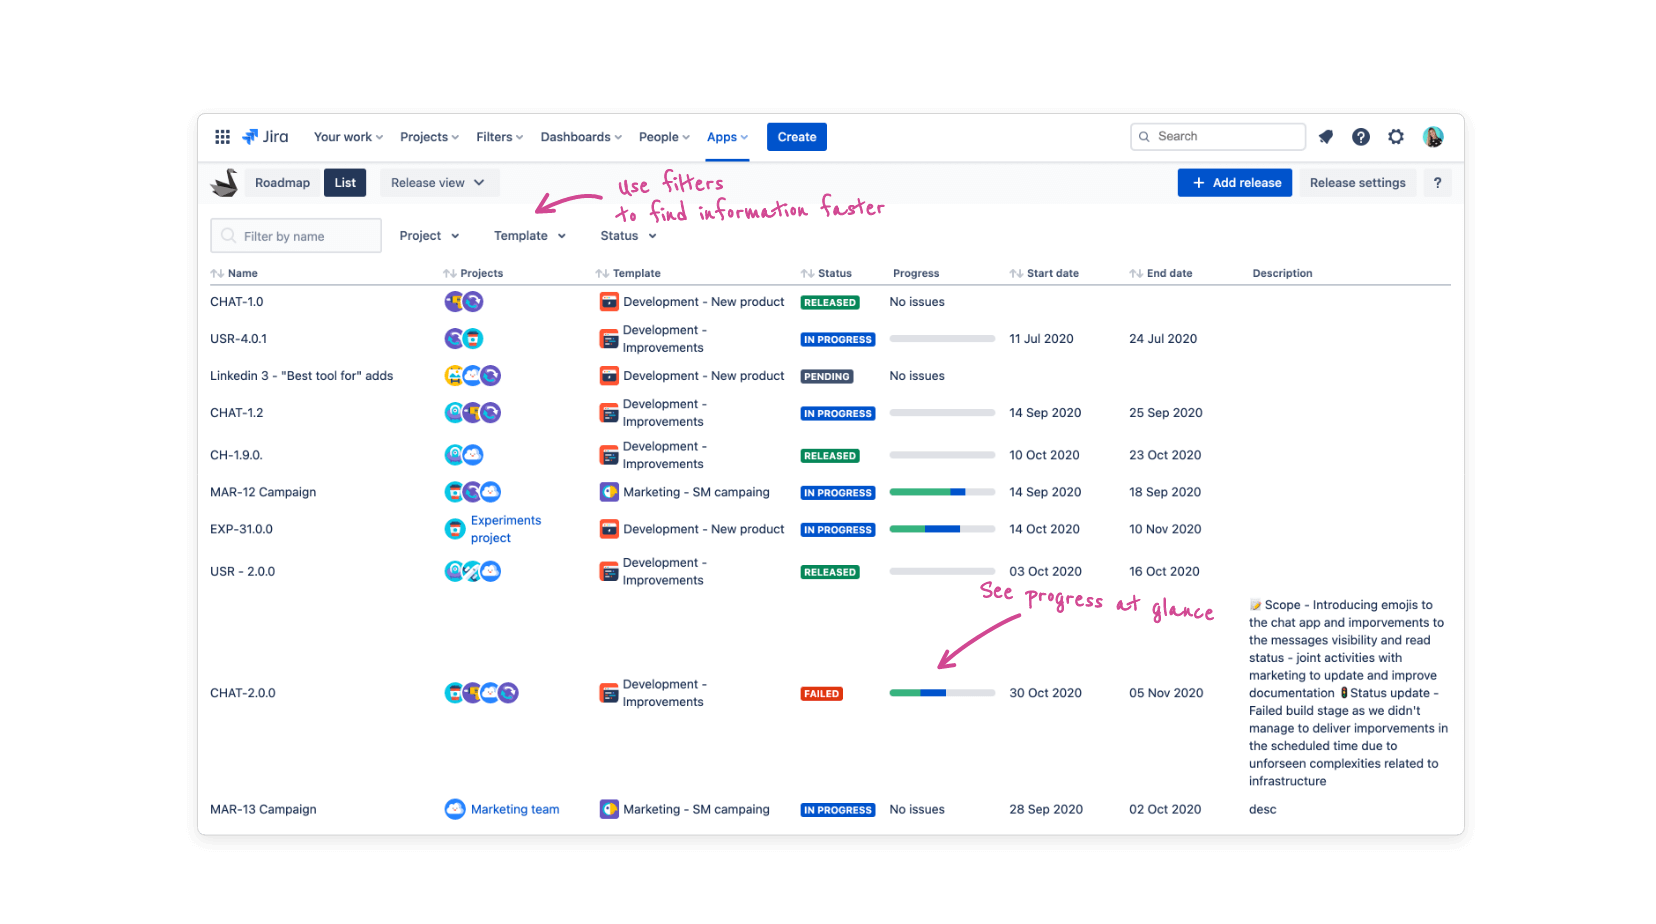 Cross-project list view in Jira - Swanly